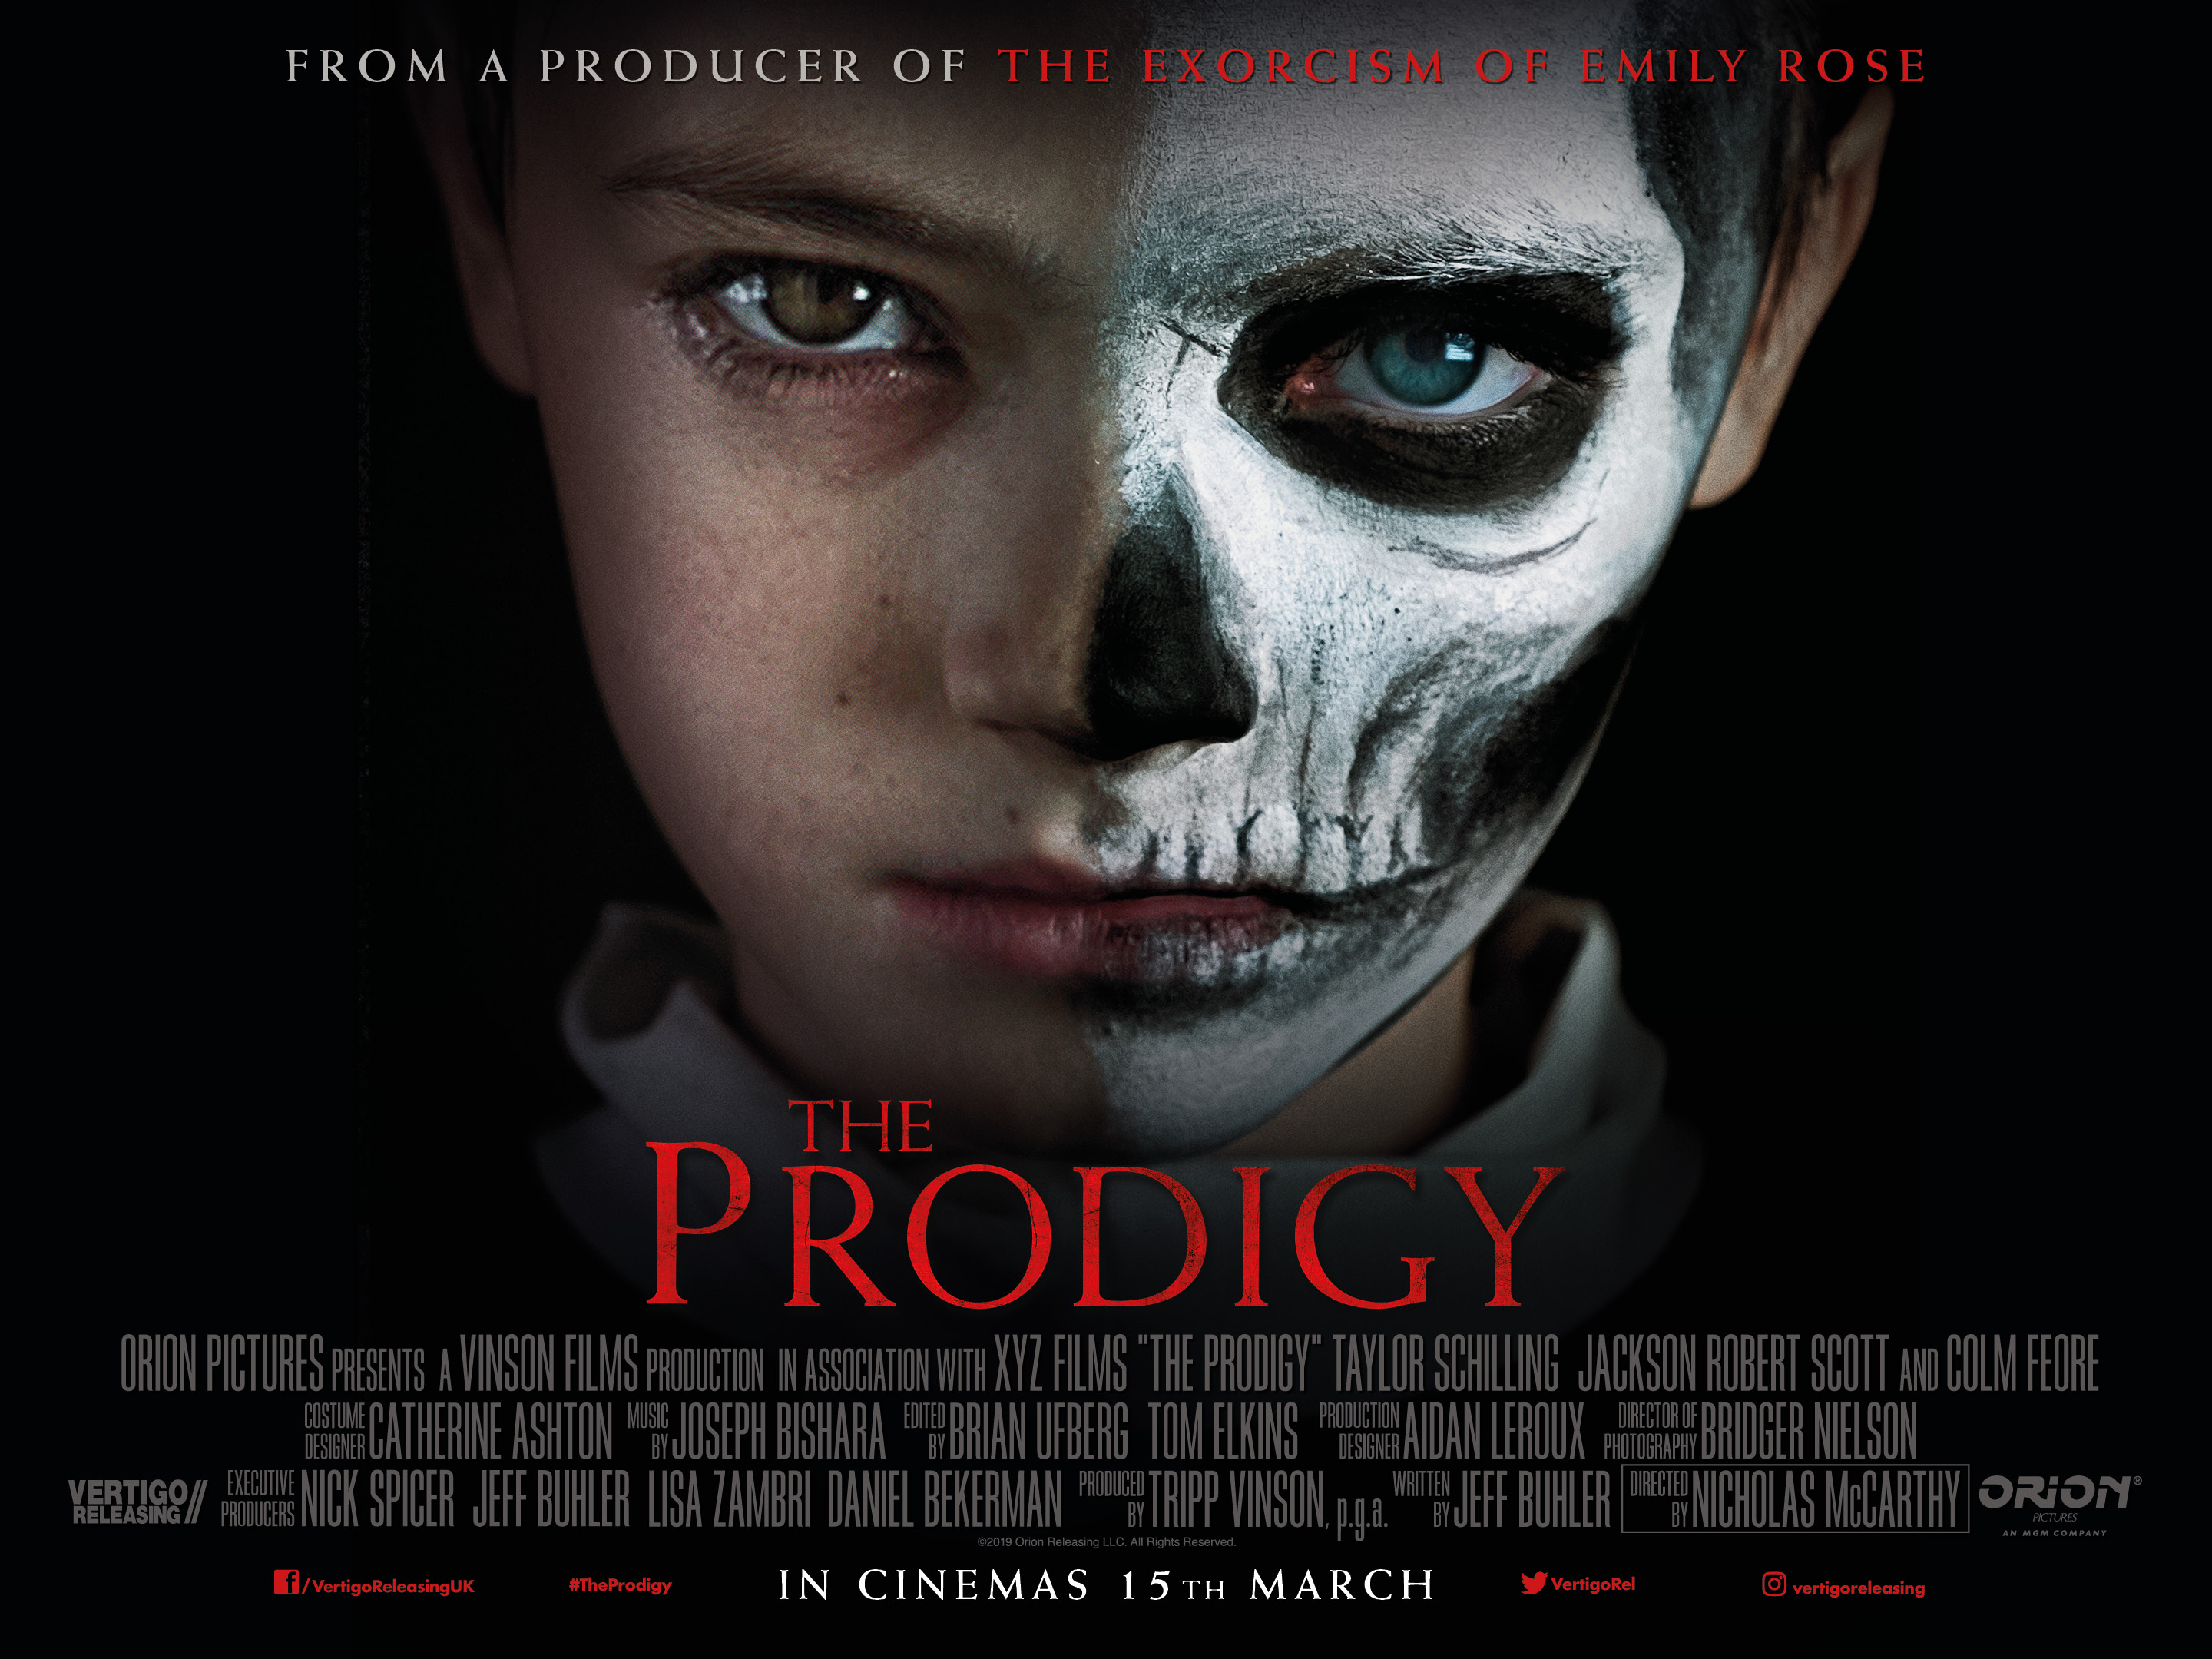 The Prodigy film review: Taylor Schilling's son is a bad seed in creepy kid horror